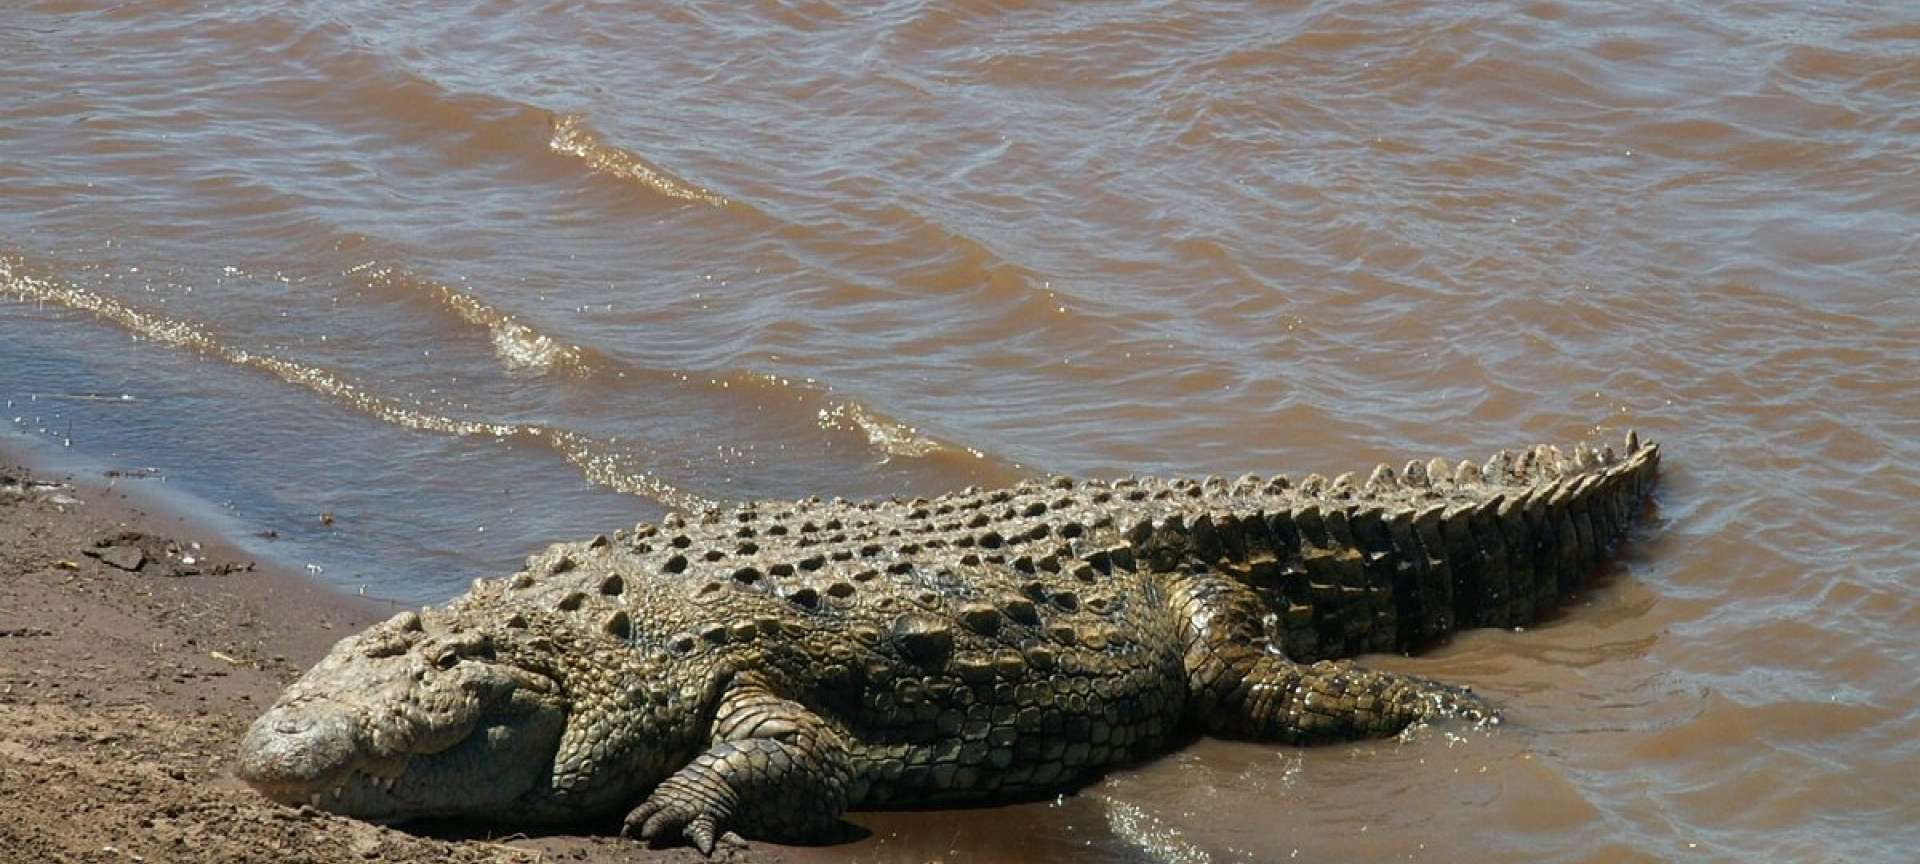 Crocodiles have a feast during a river crossing